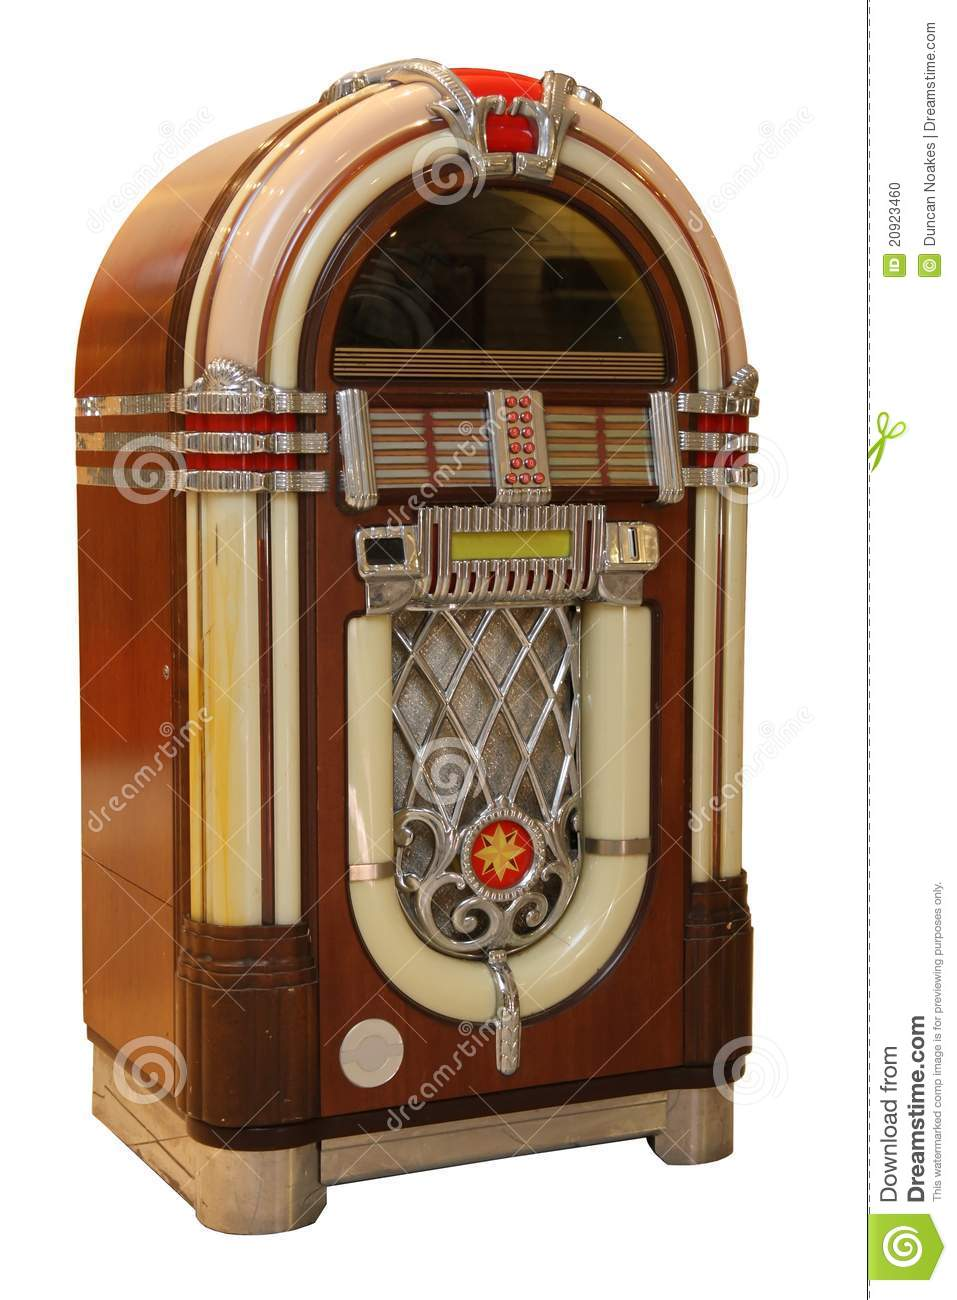 Old Jukebox Music Player stock photo. Image of player - 20923460